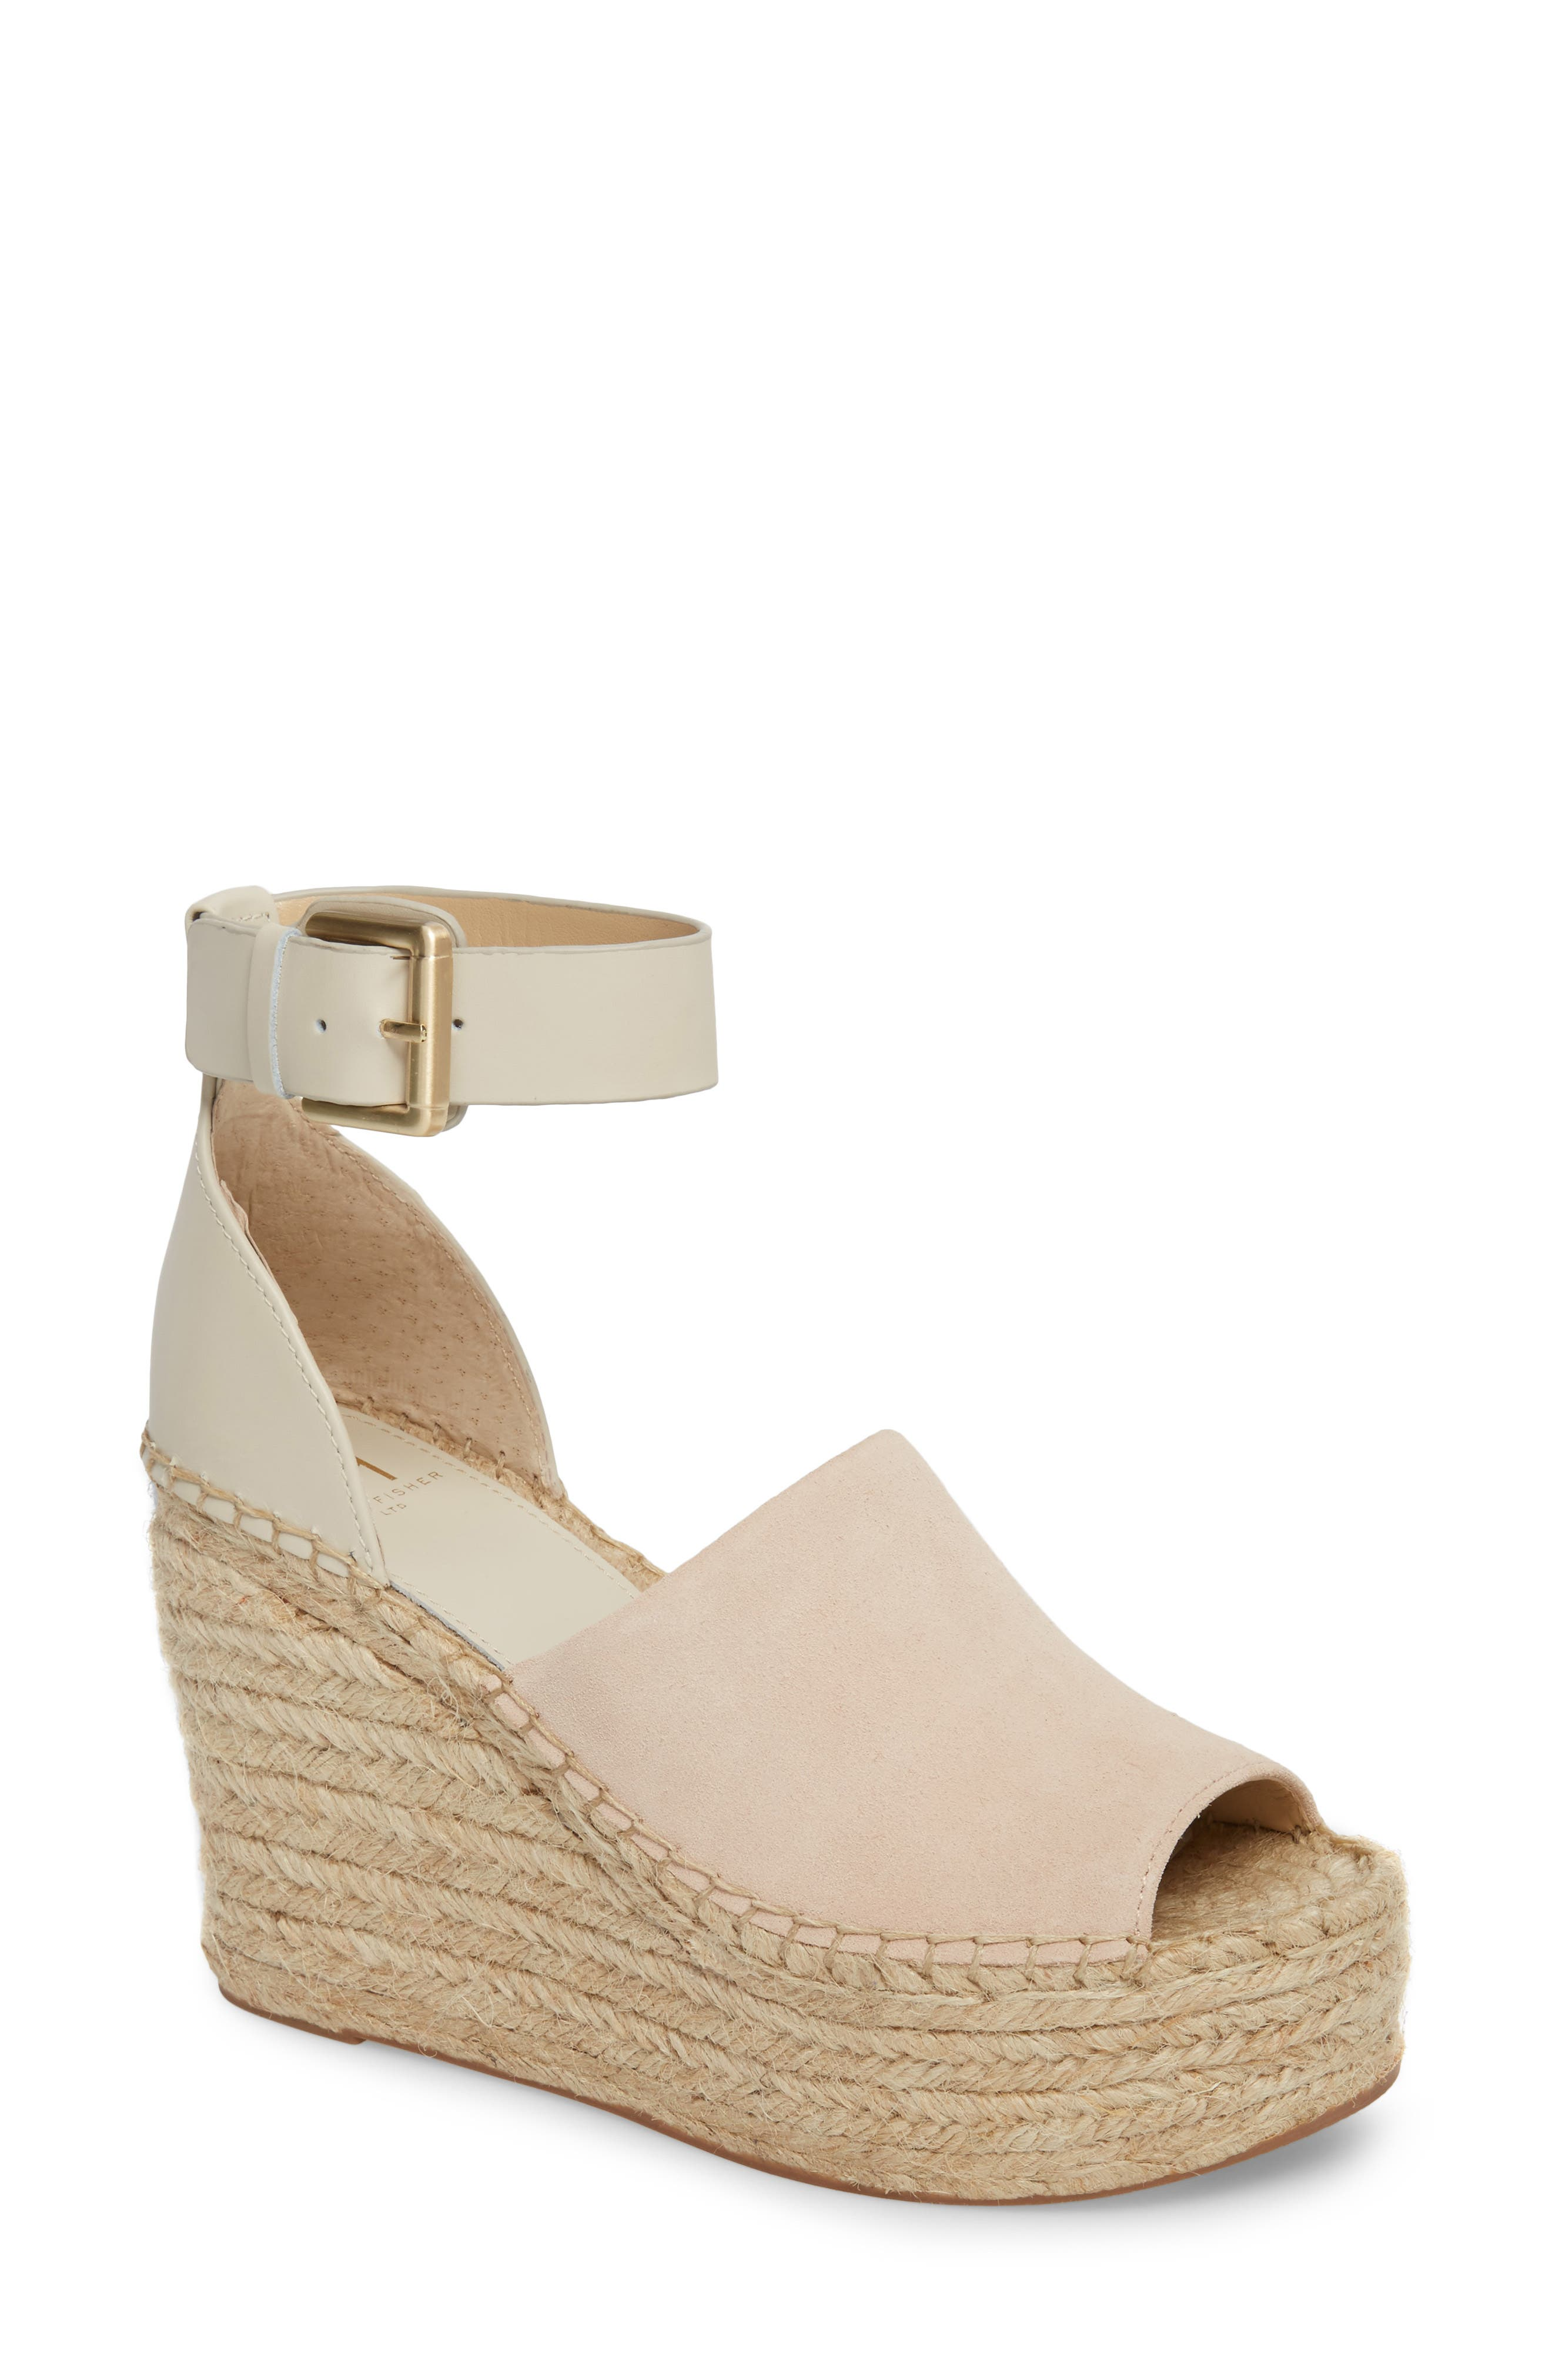 Adalyn Espadrille Wedge Sandal, Main, color, IVORY SUEDE